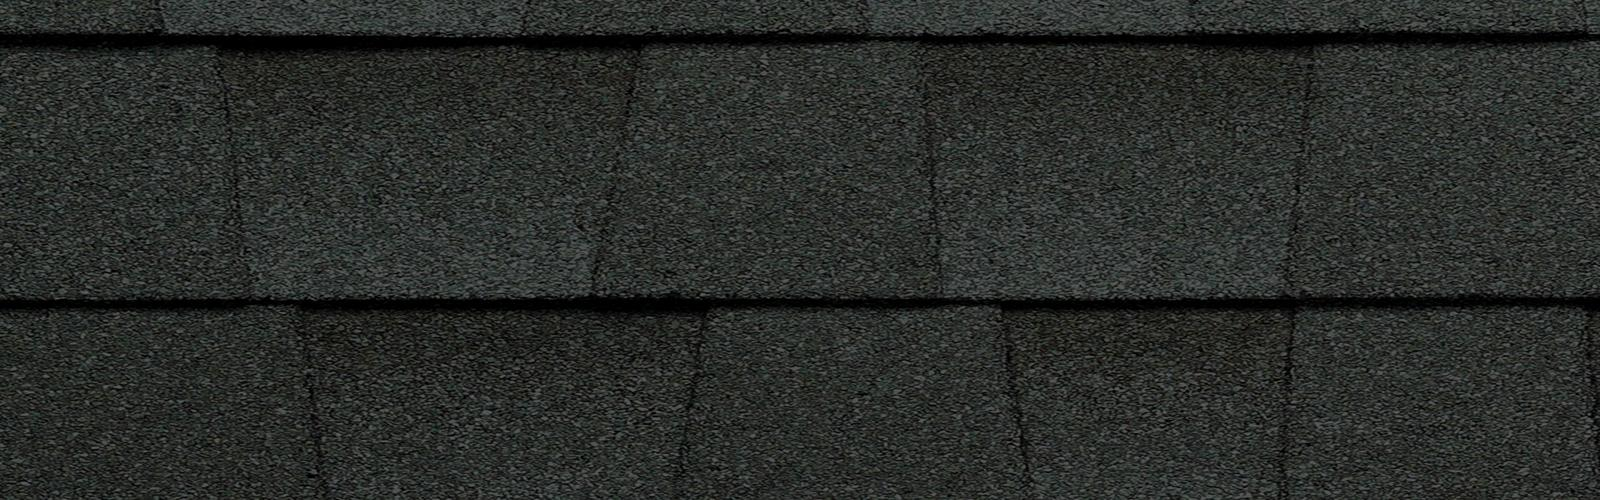 Brads Quality Roofing Images